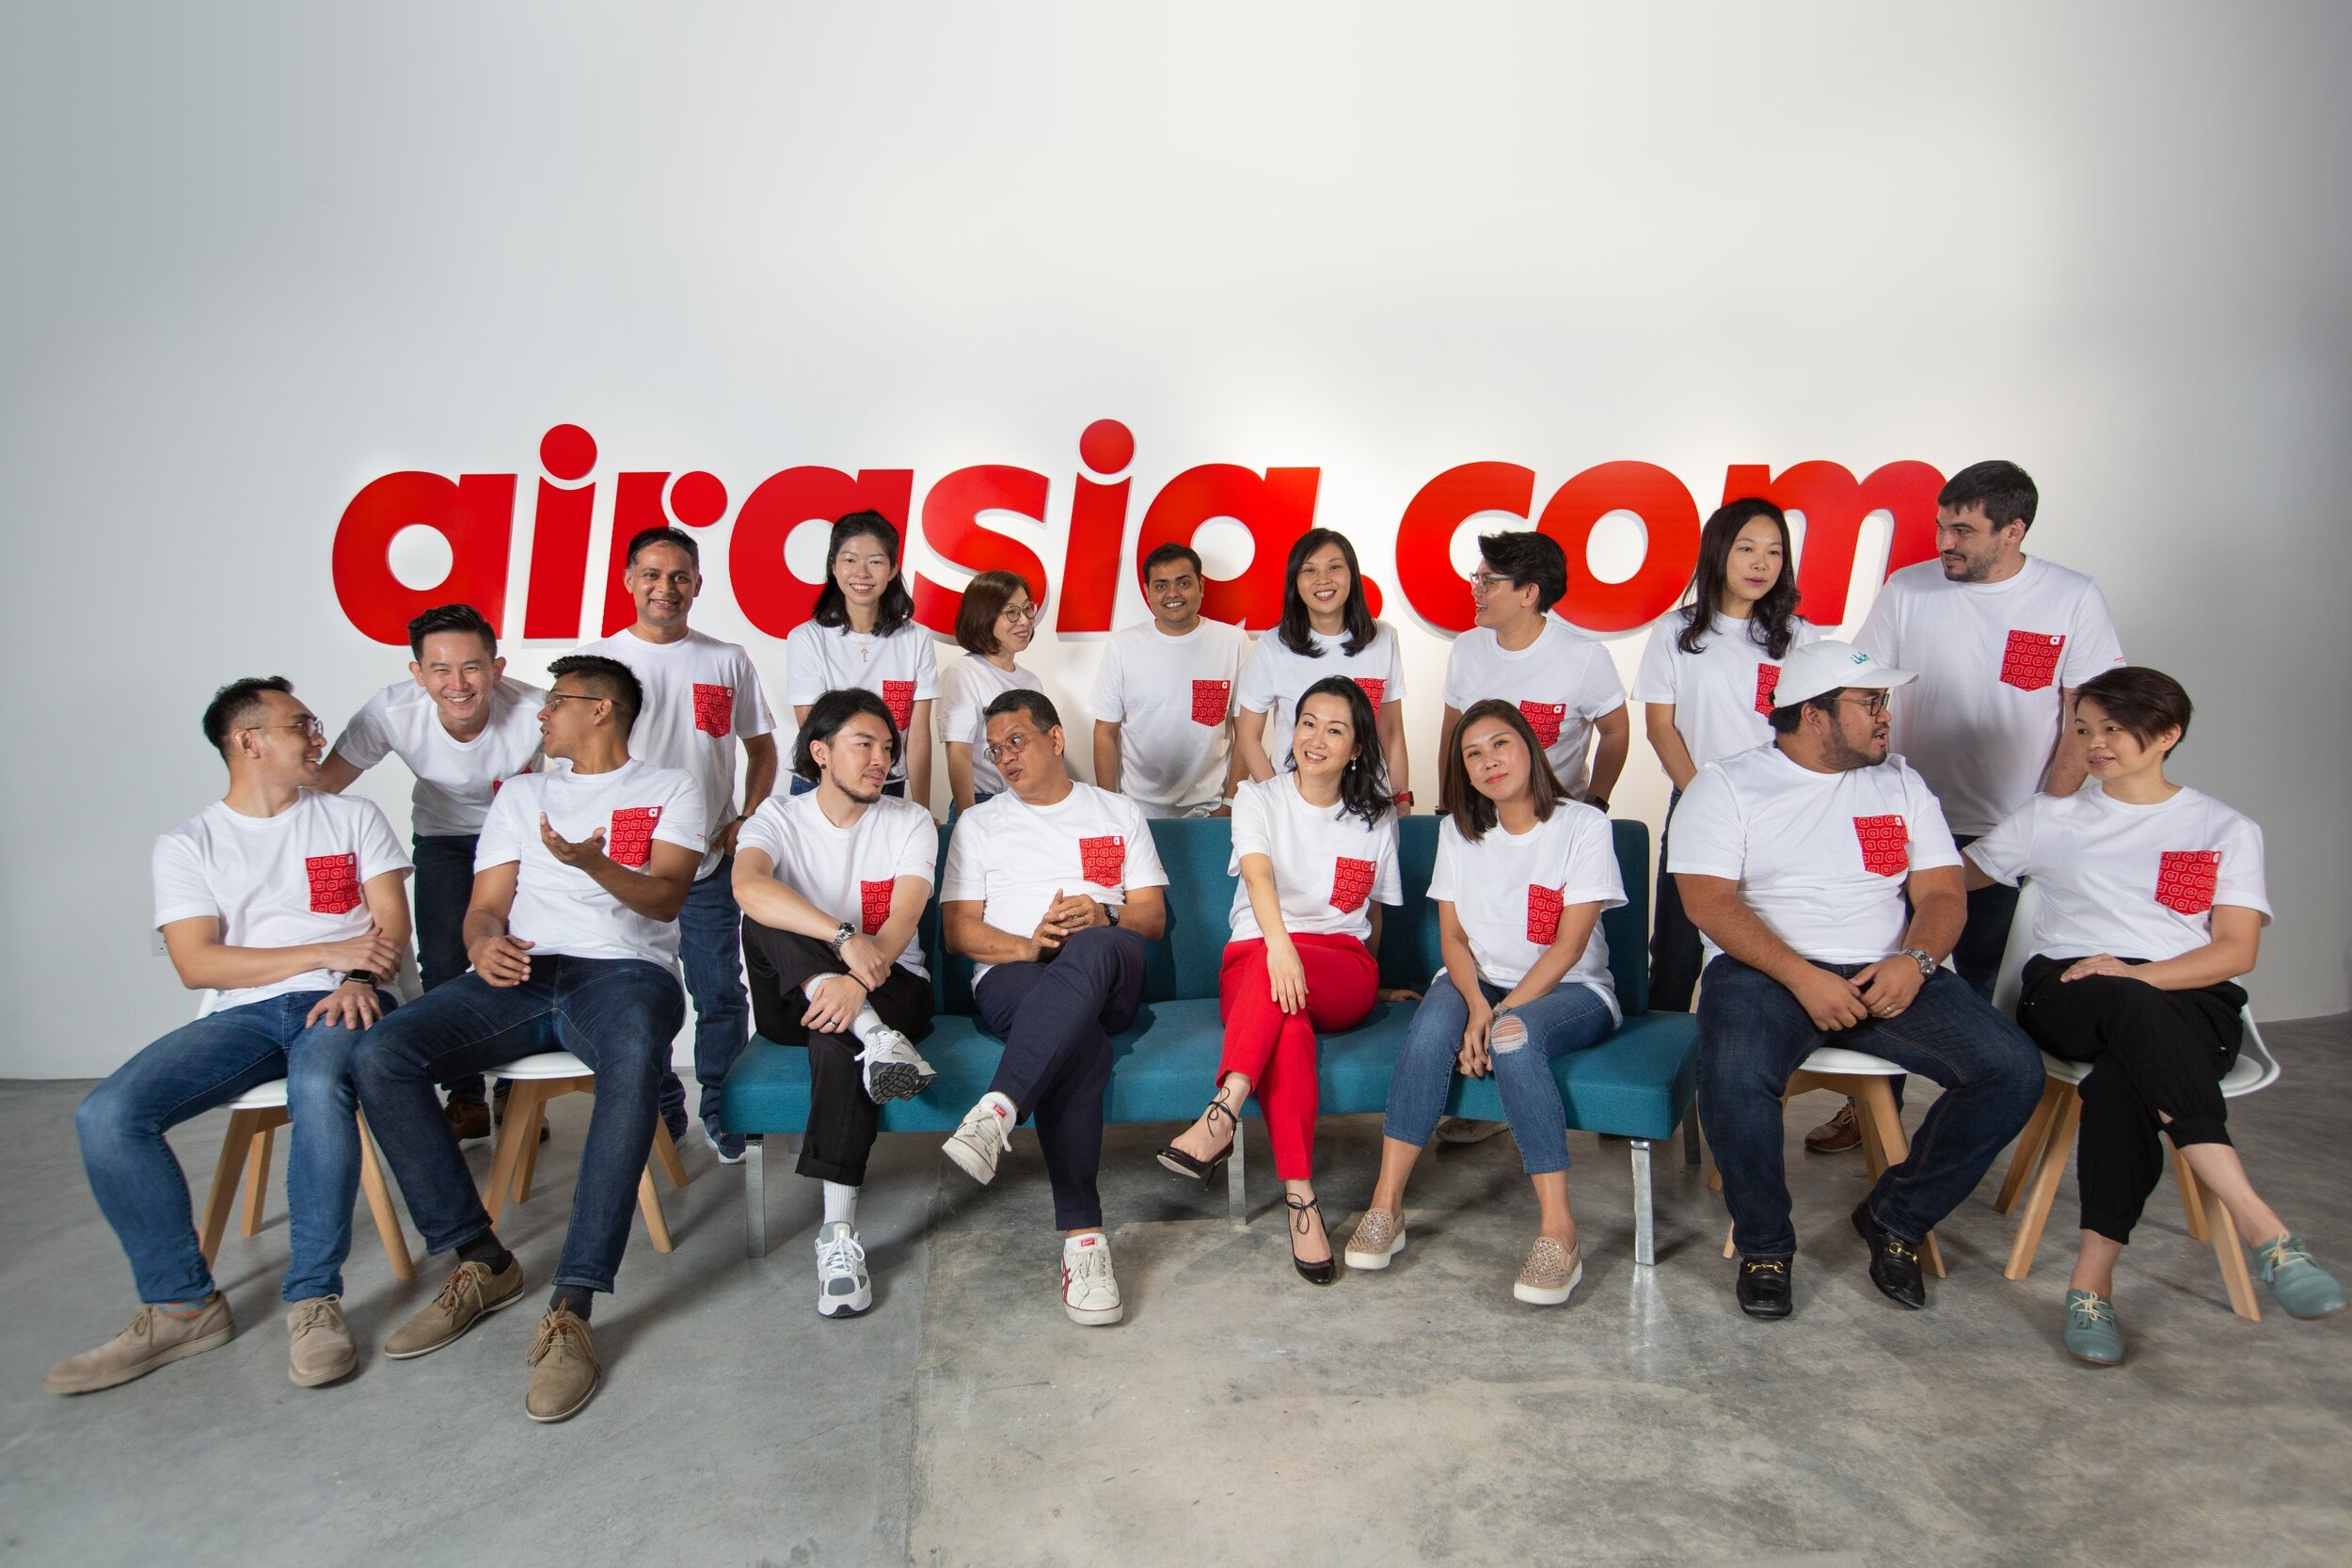 [Fourth from right] CEO of airasia.com, Karen Chan with the airasia.com management team.